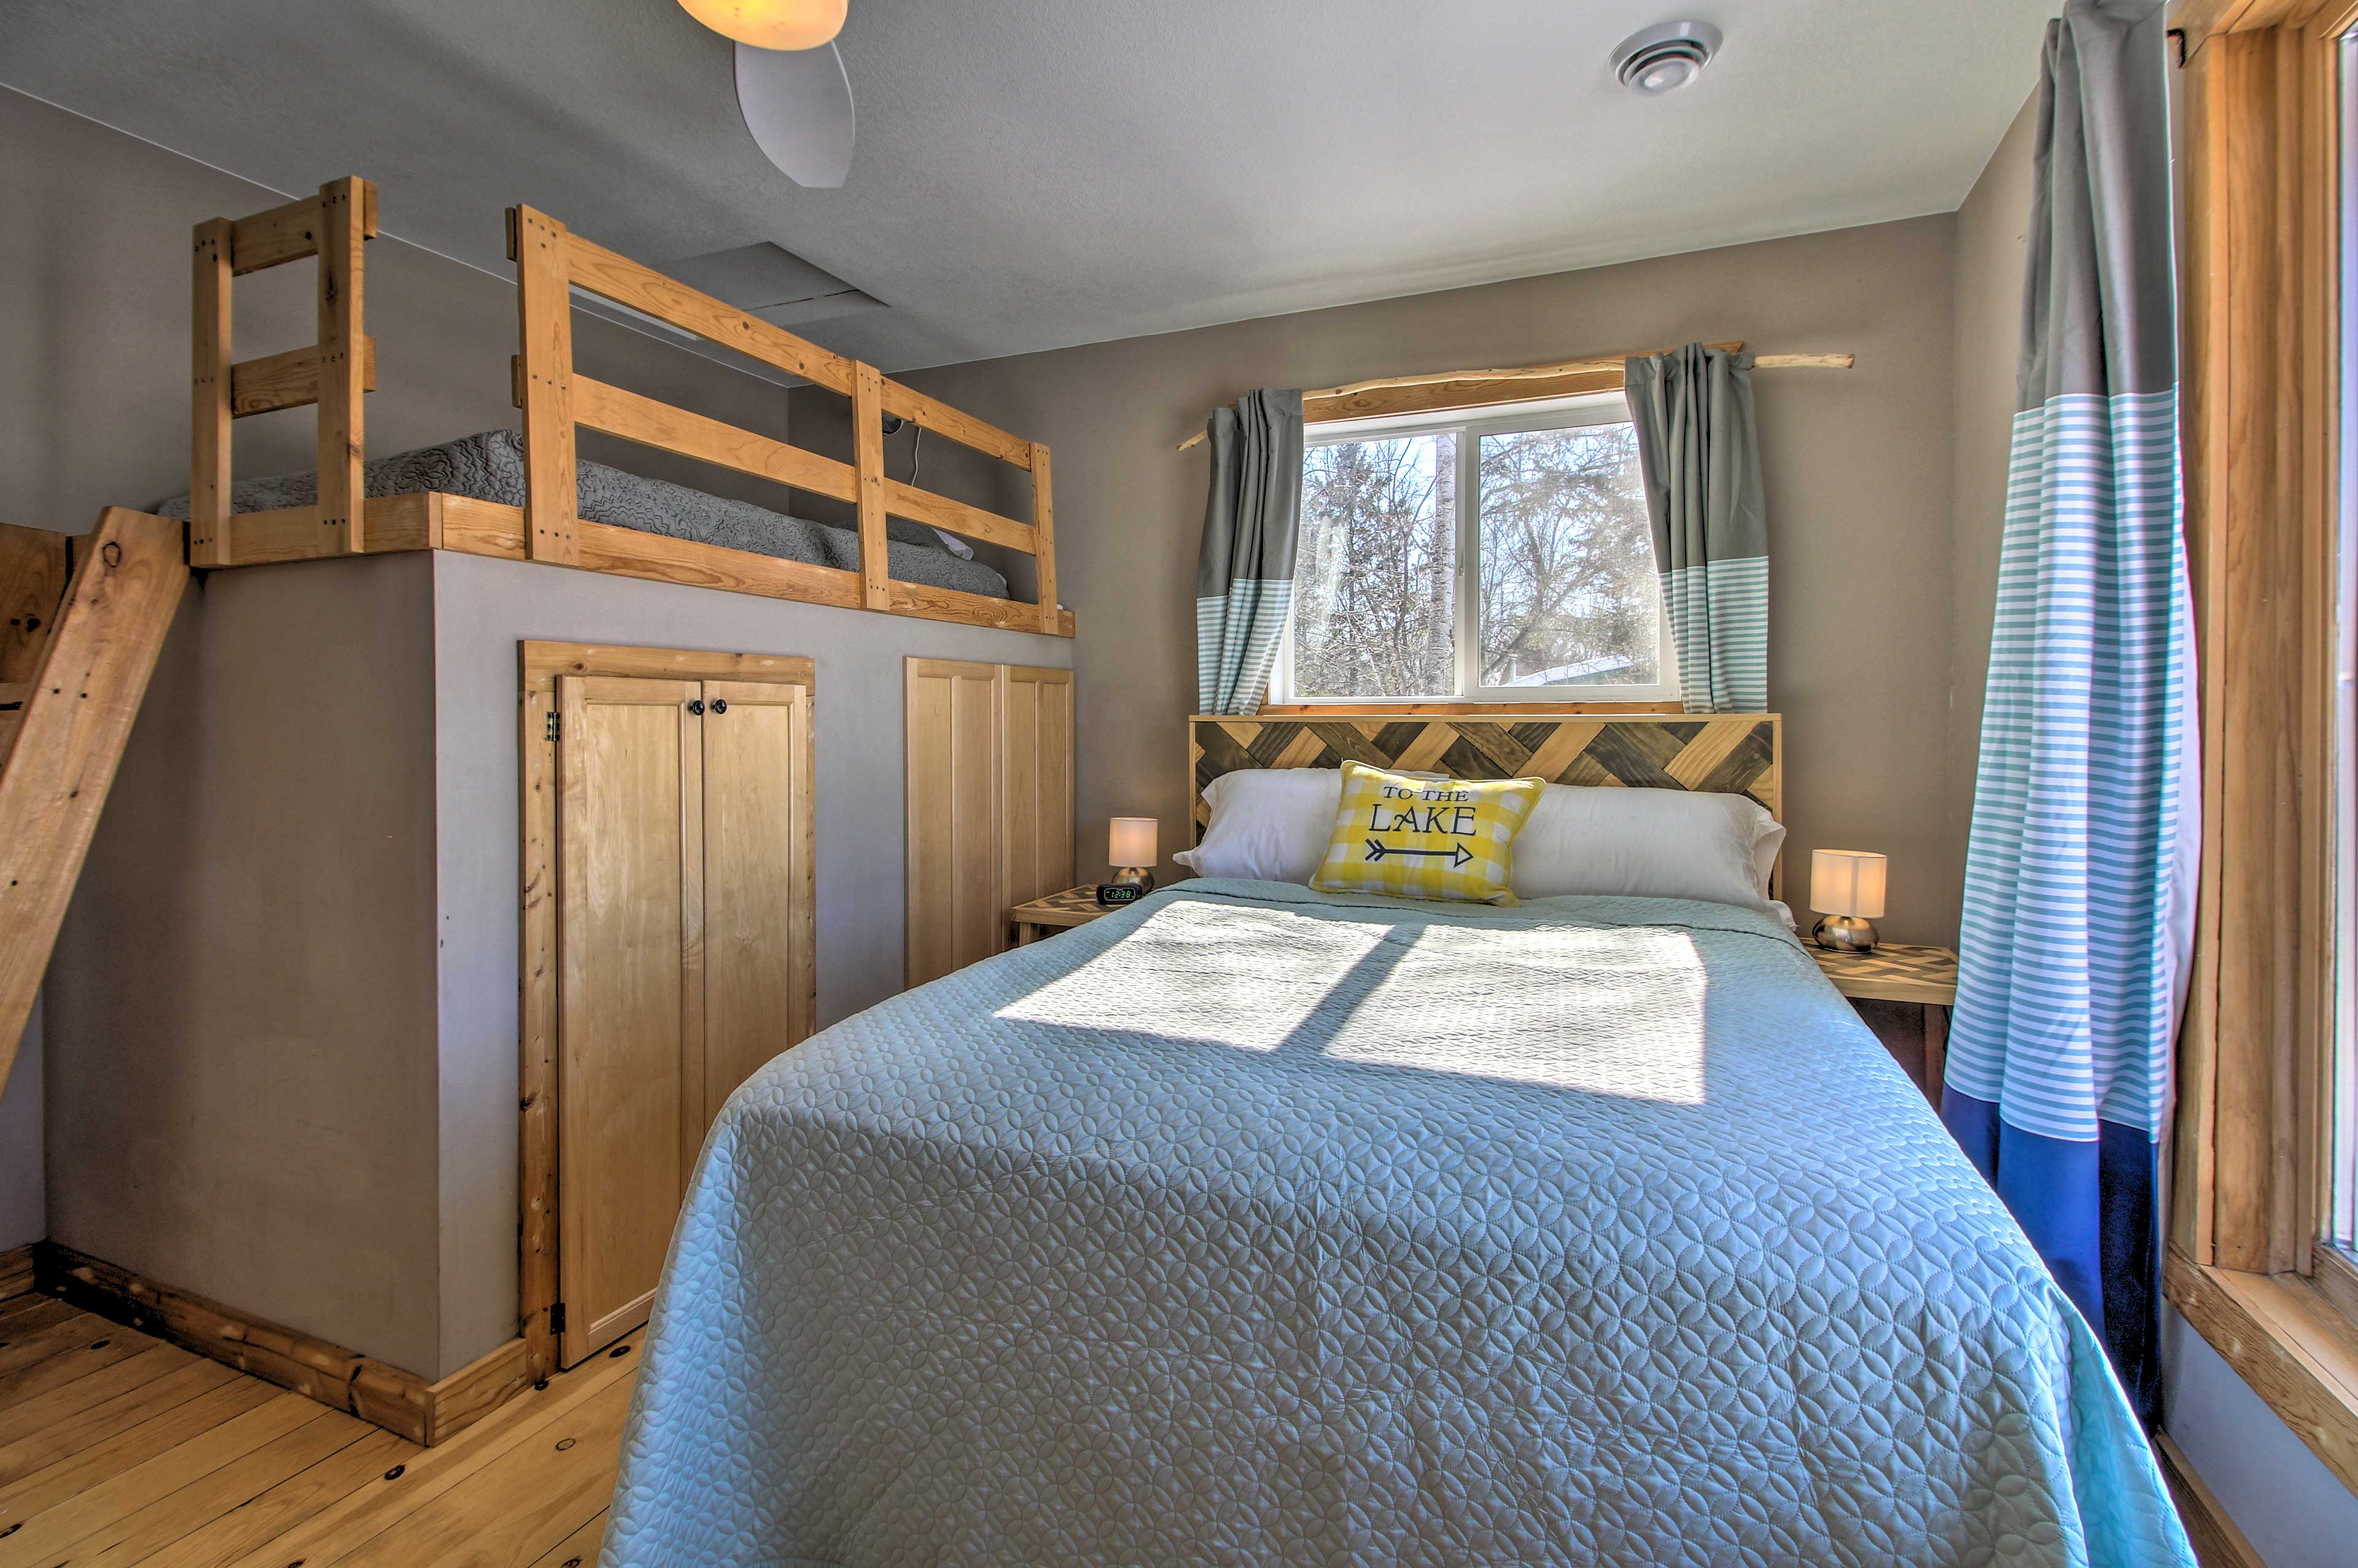 Bedroom 2 is outfitted with a queen and lofted twin bed.